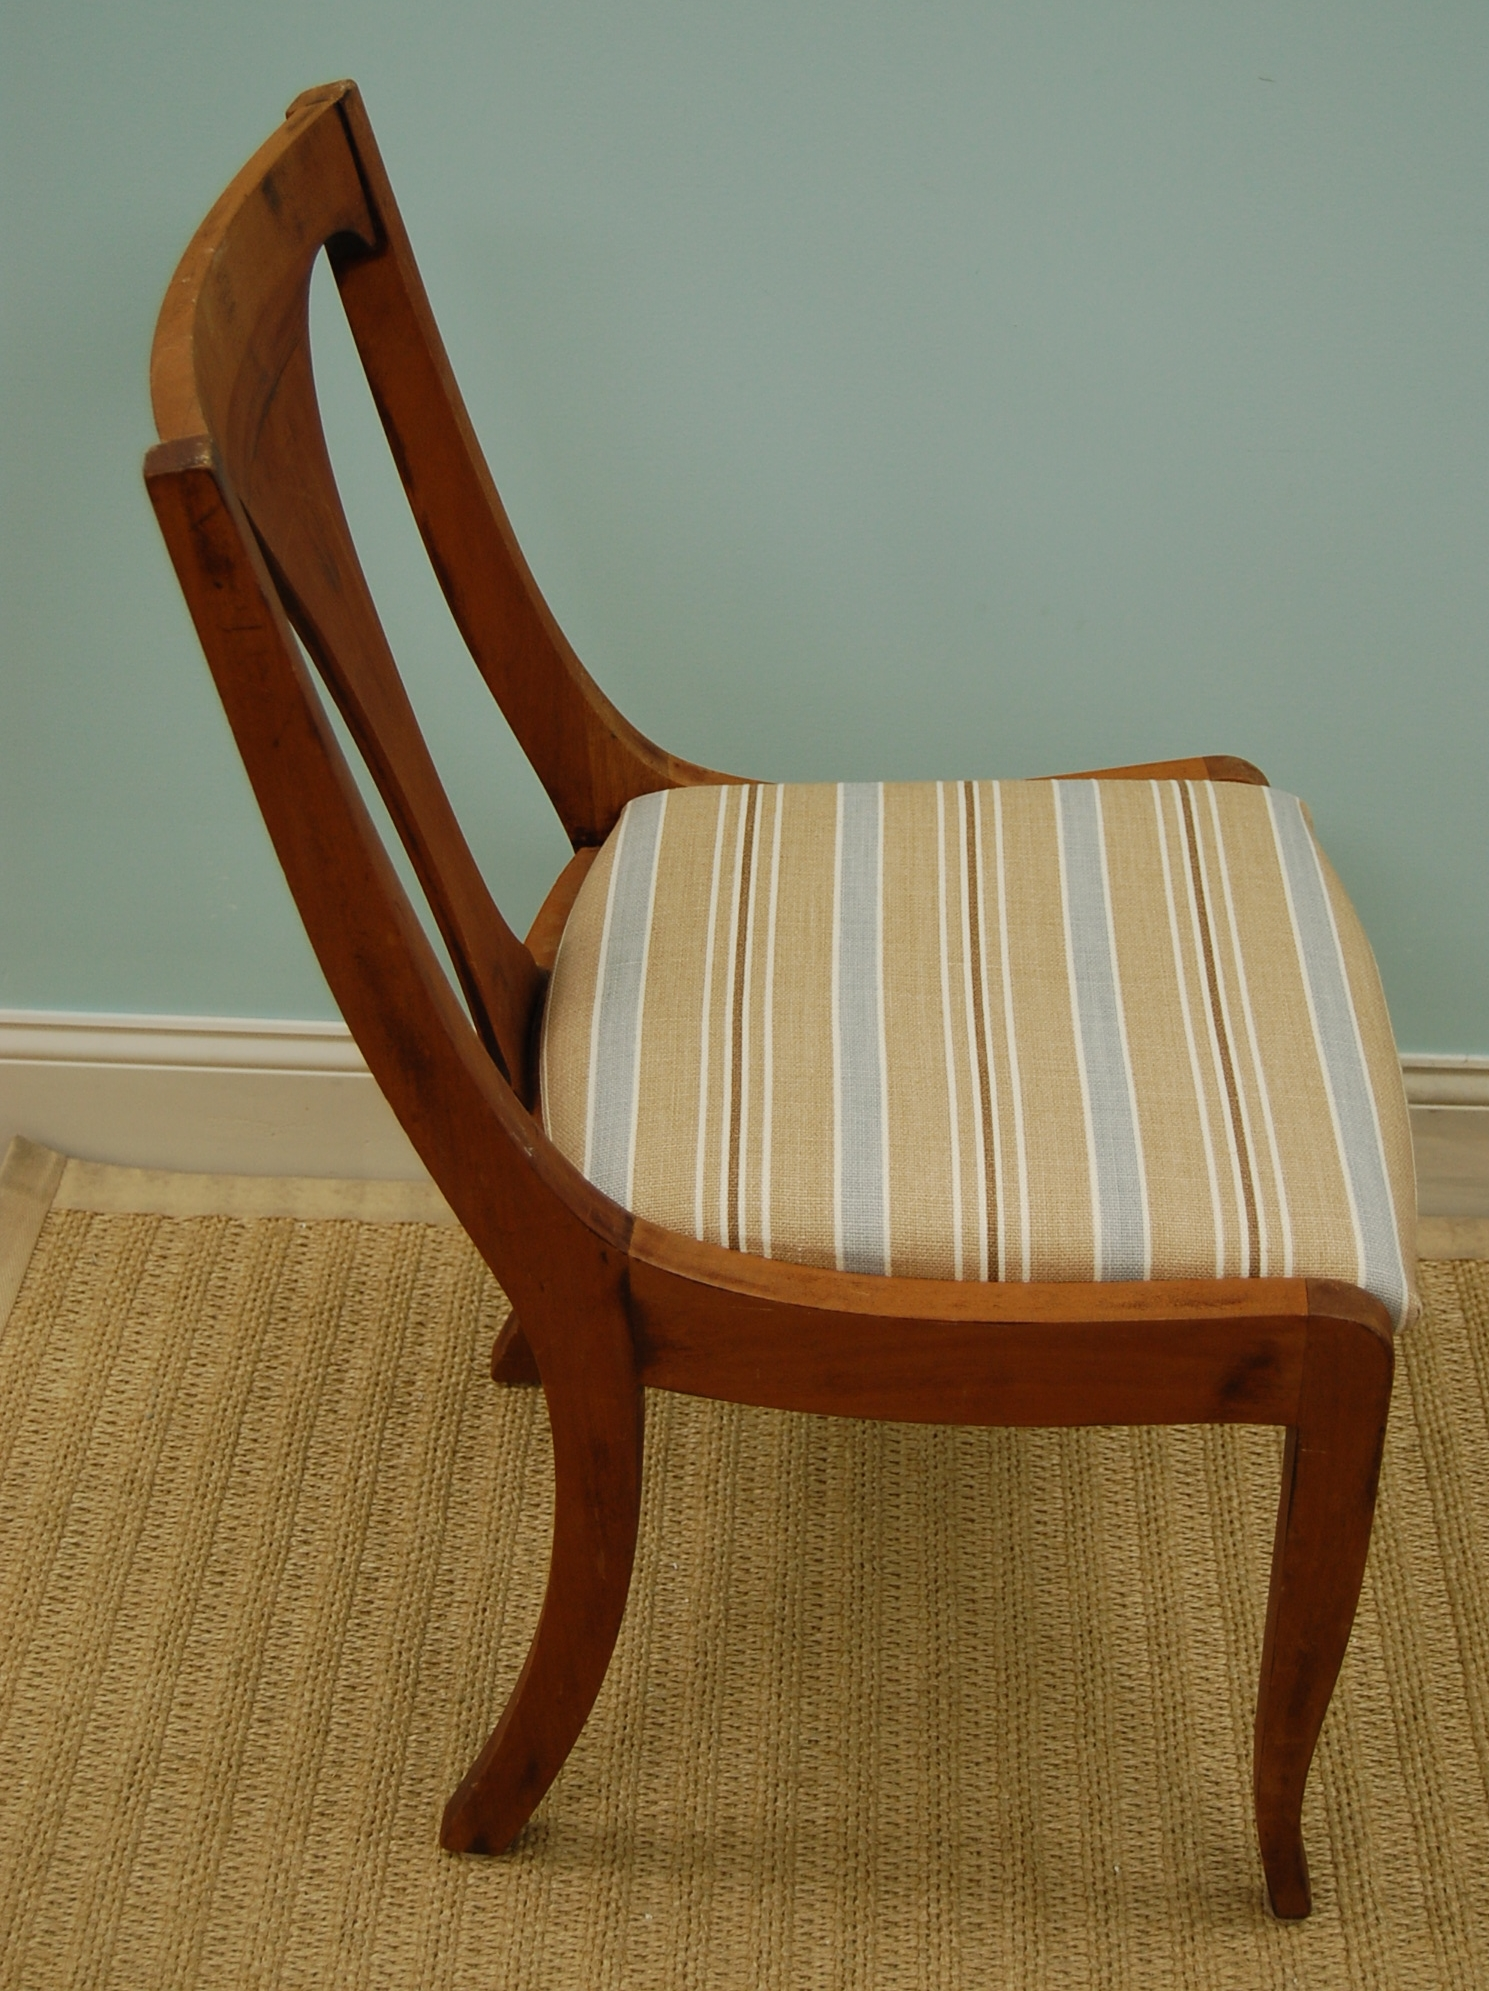 Striped Vintage Chair